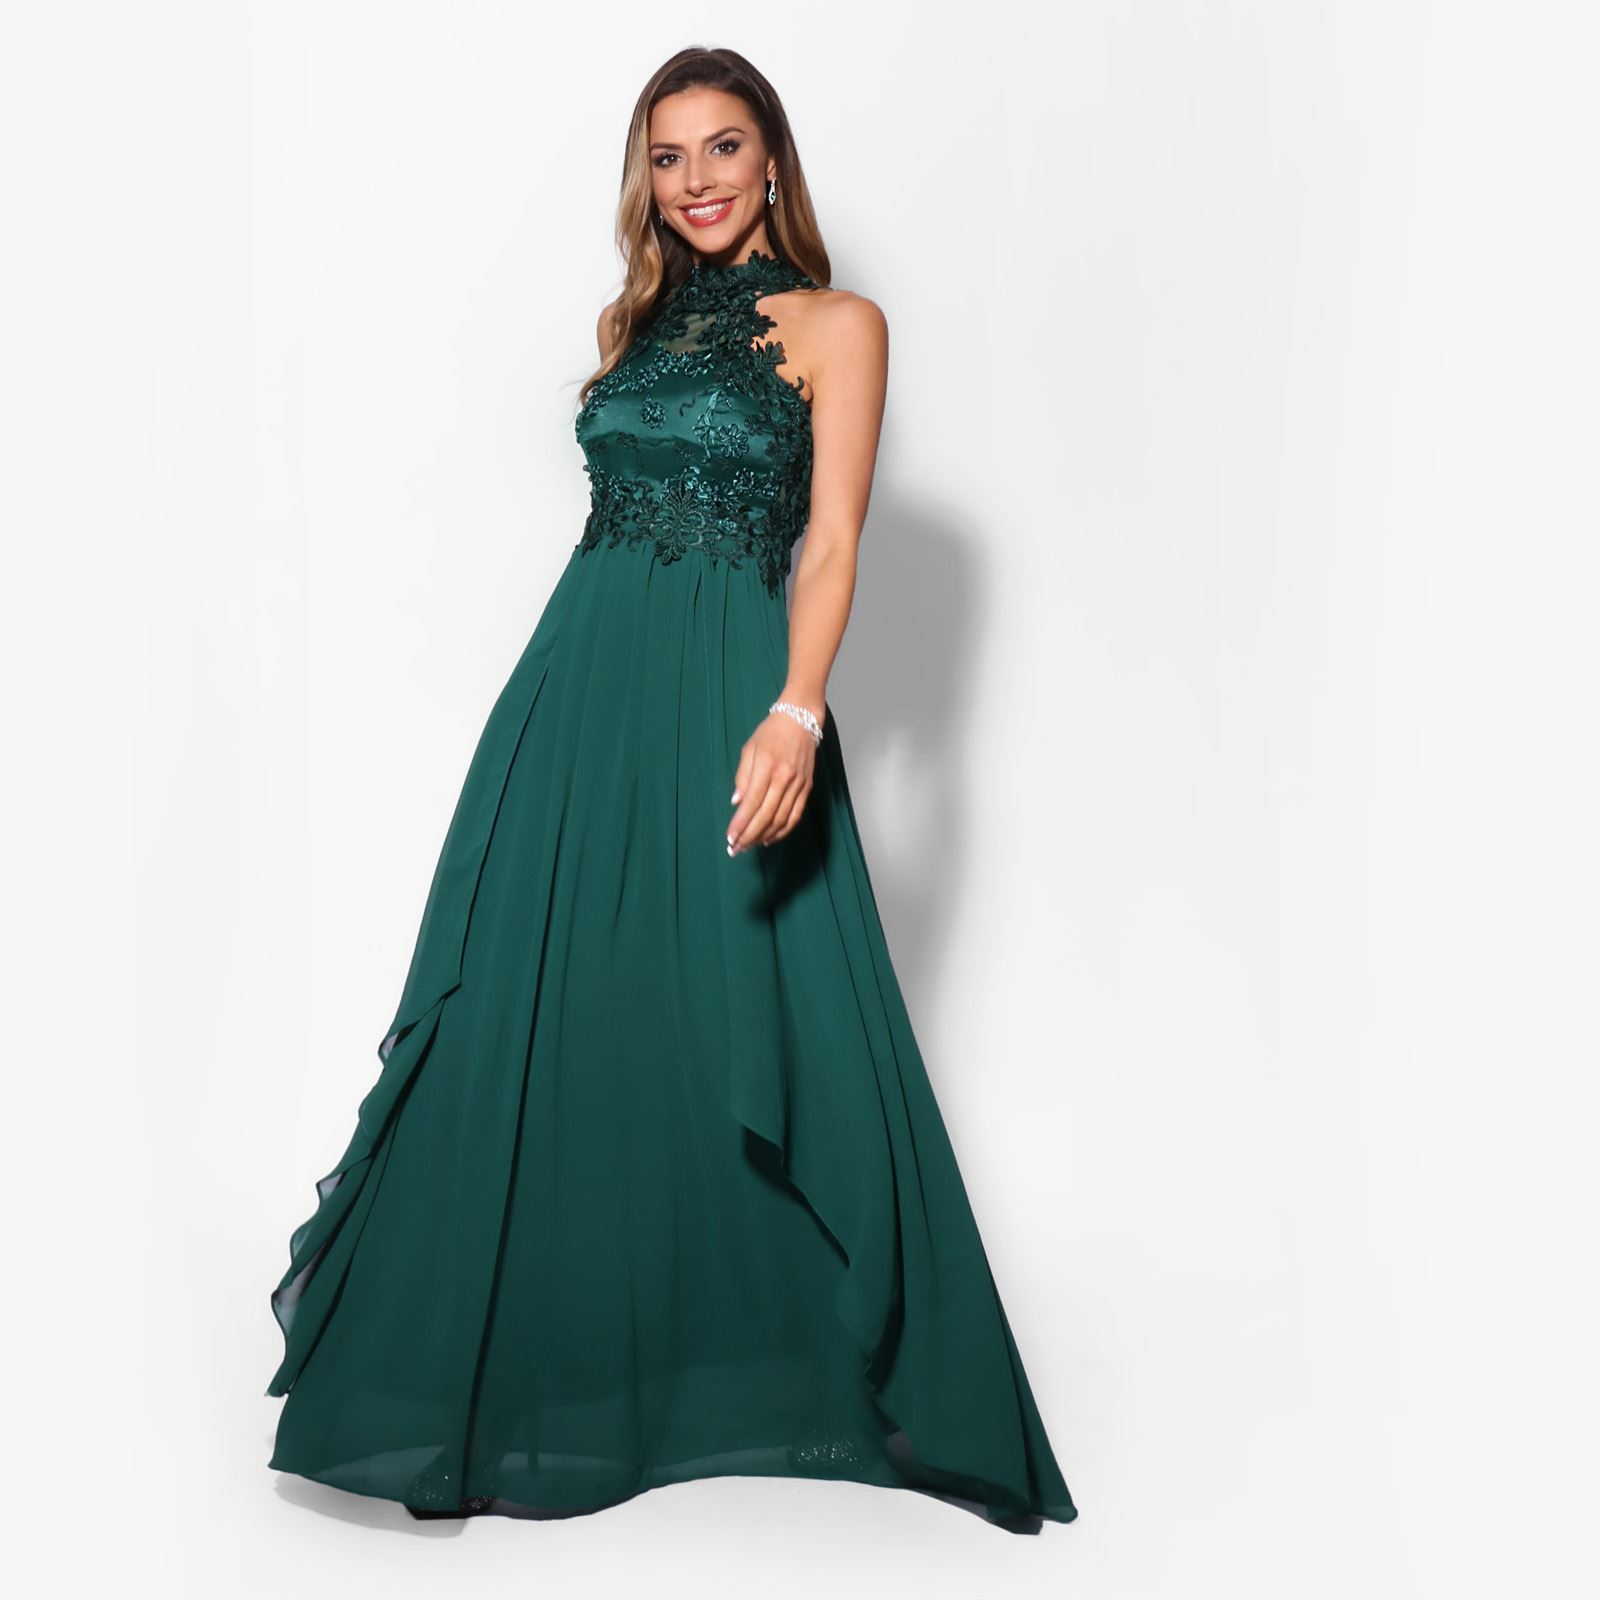 Women-Lace-Halterneck-Maxi-Dress-Long-Evening-Cocktail-Ball-Gown-Formal-Party thumbnail 3